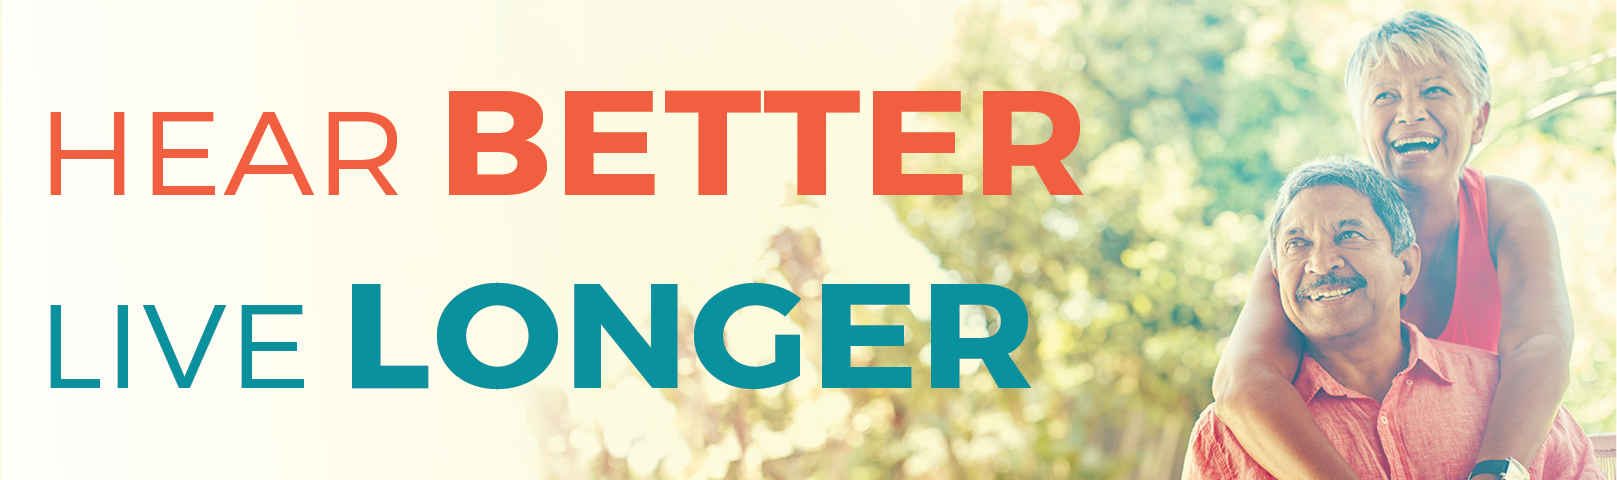 Hear Better, Live Longer